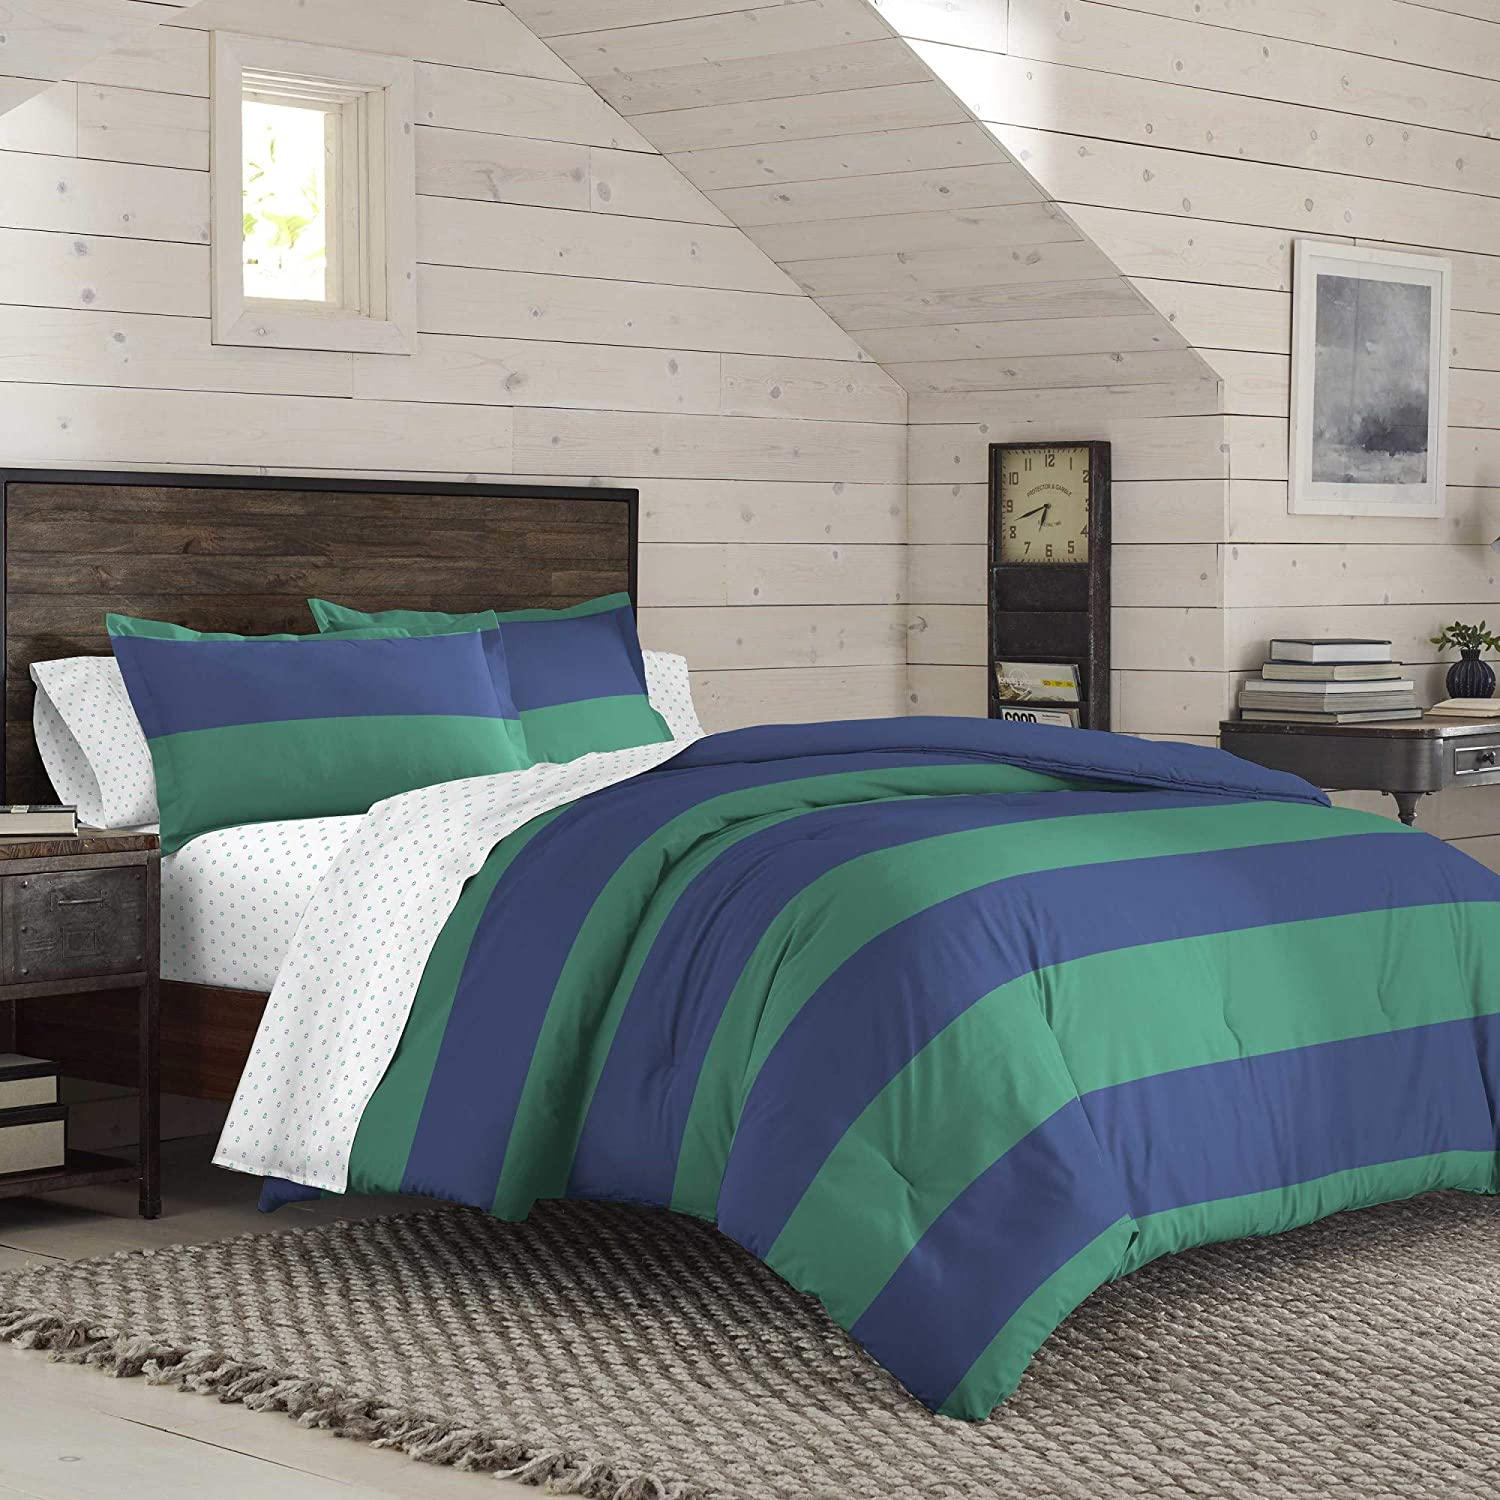 IZOD American Rugby Comforter Set with Hypoallergenic and Machine Washable Ultra Soft, All- Season, Light Weight, Breathable, Hotel Quality, King, Blue/Green